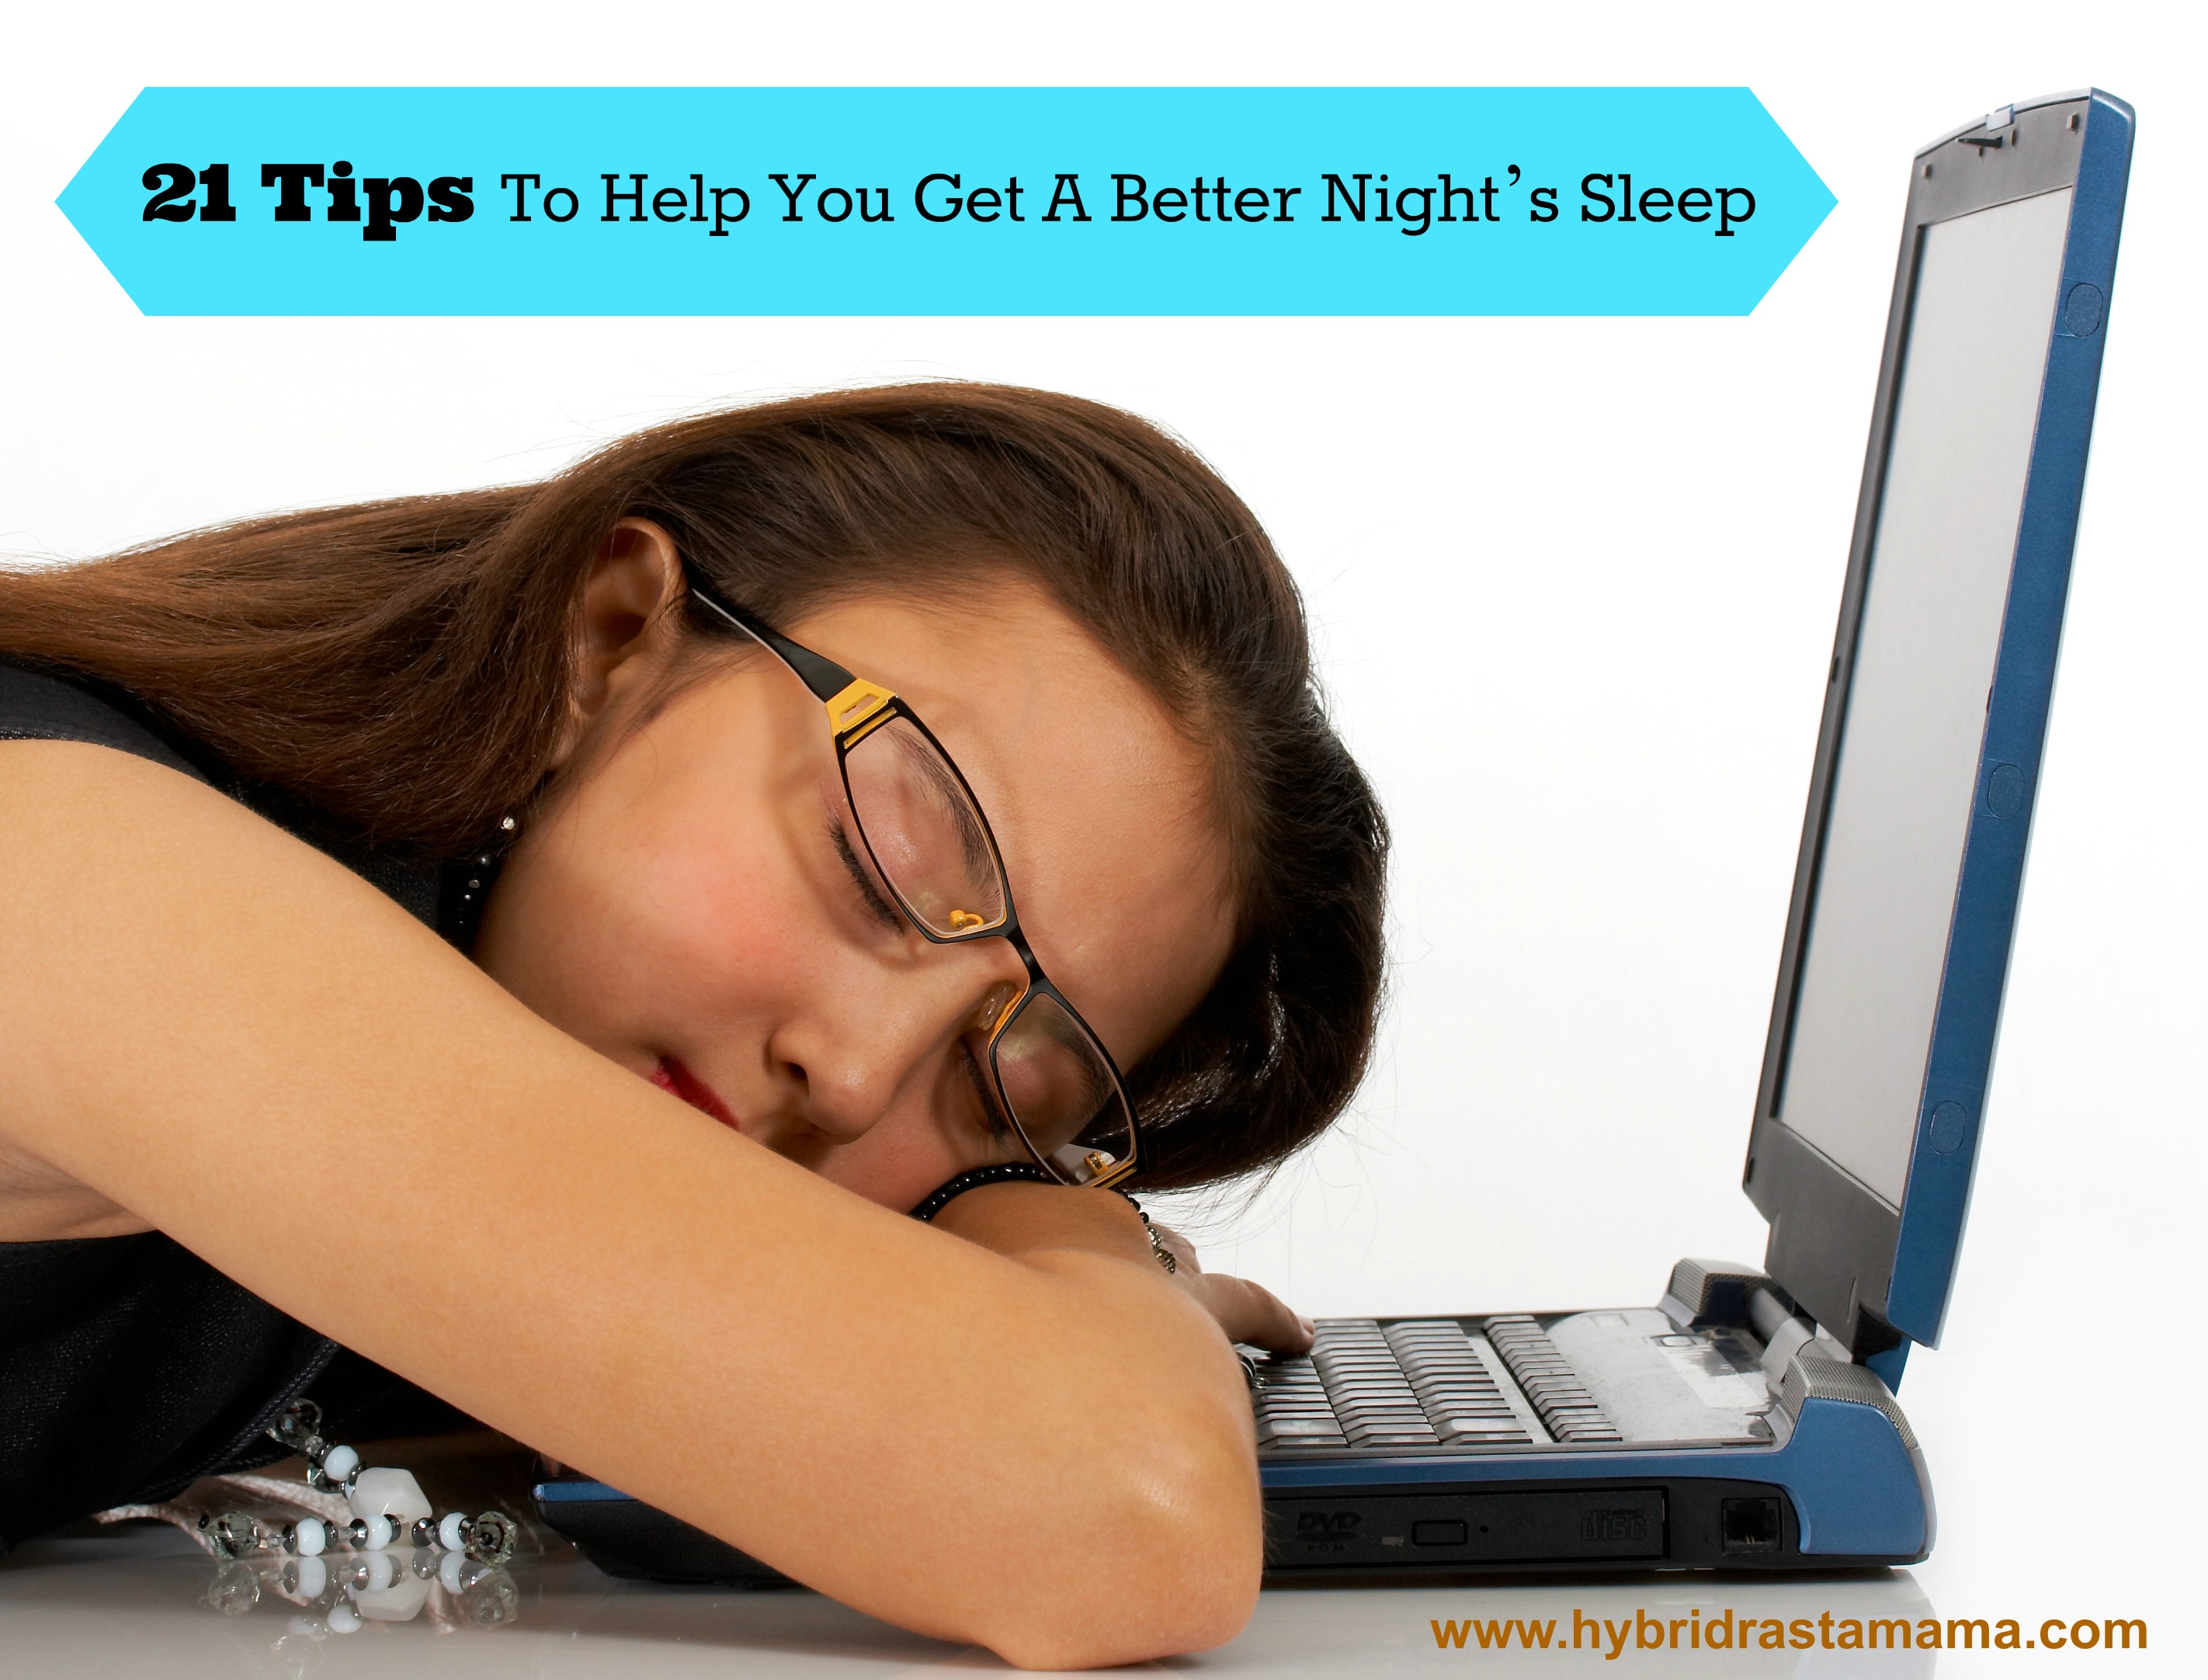 21 Tips To Help You Get A Better Night's Sleep